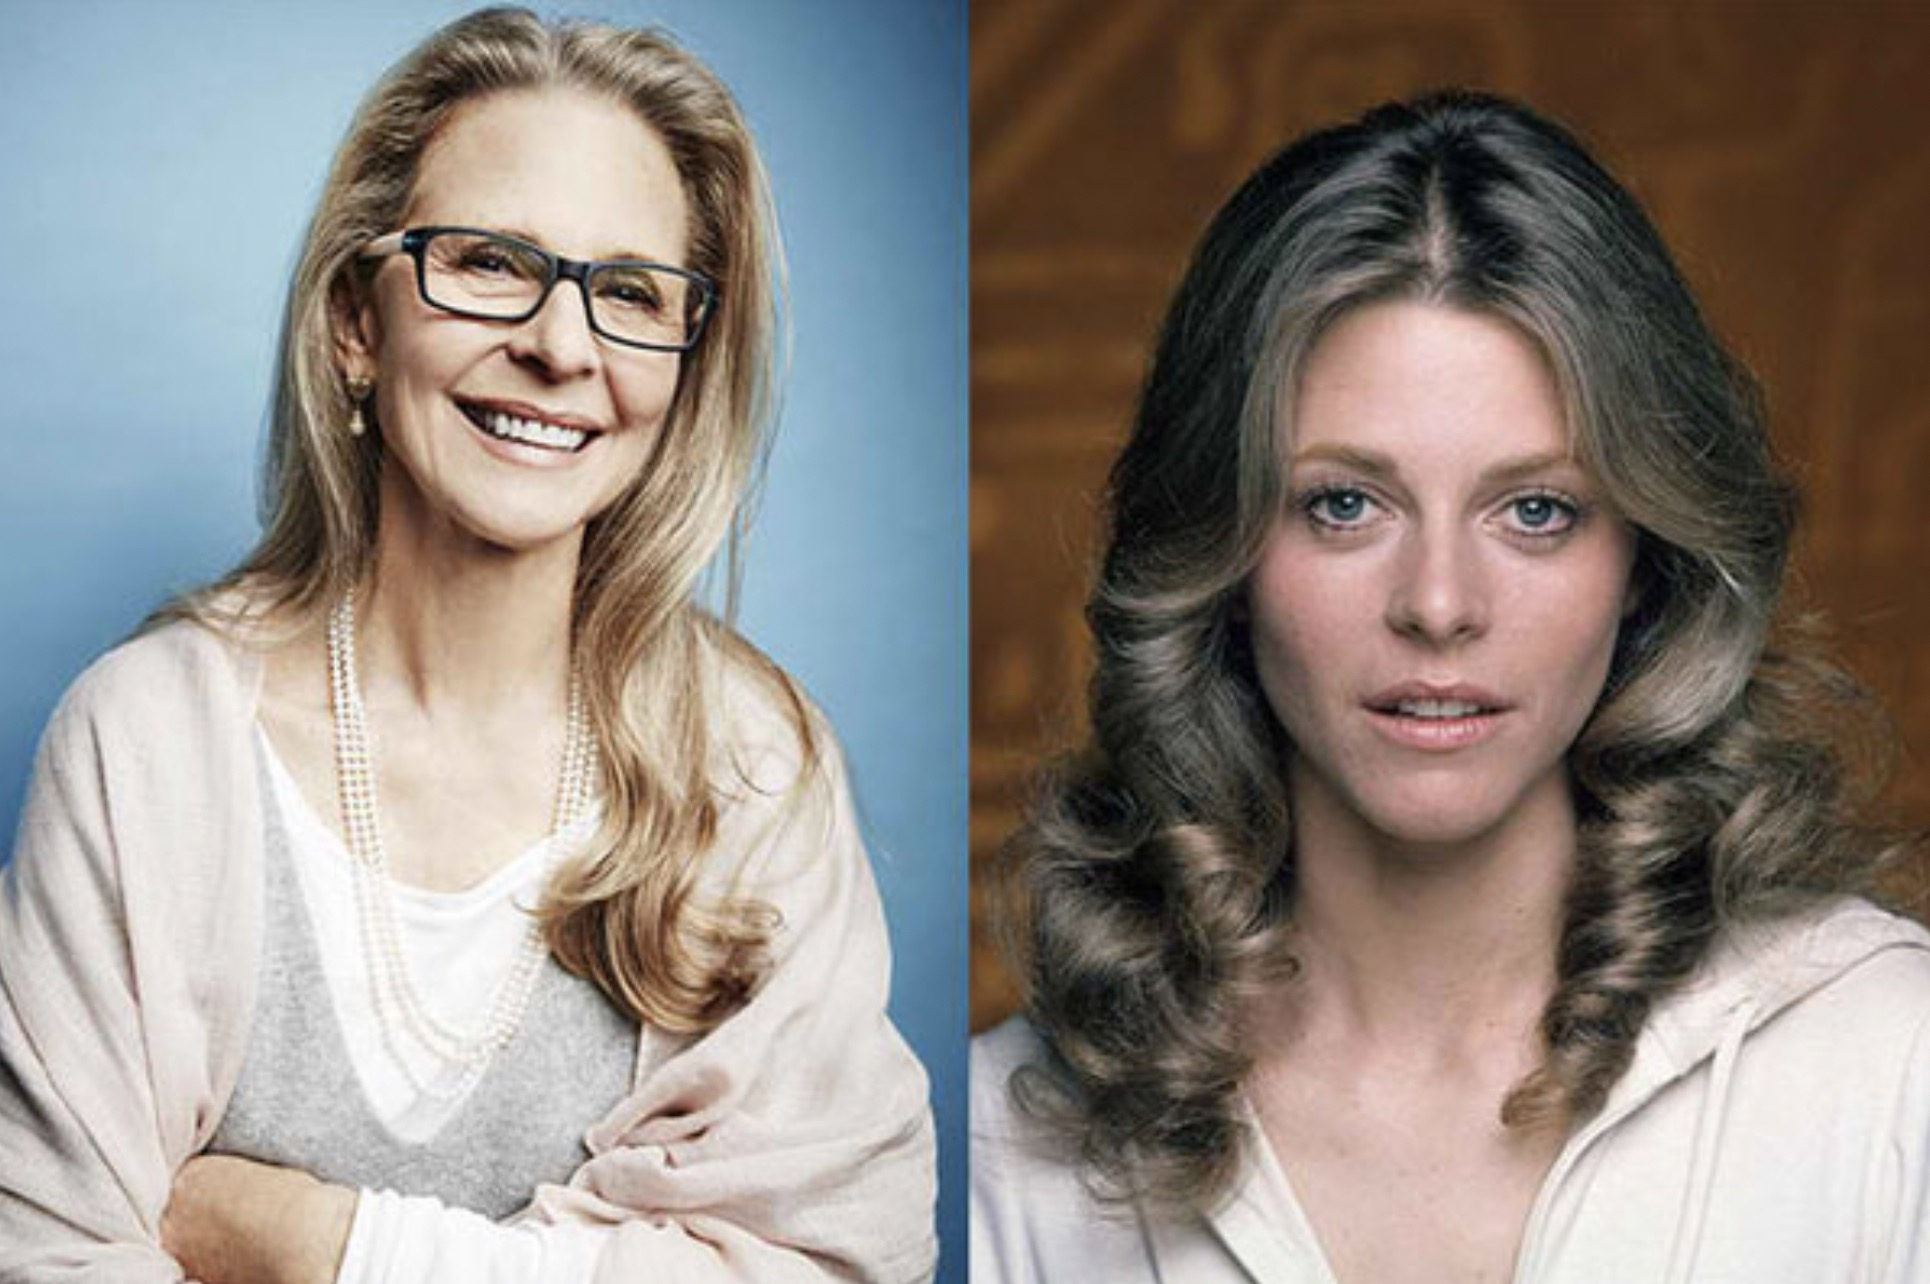 LINDSAY WAGNER 69 YEARS OLD